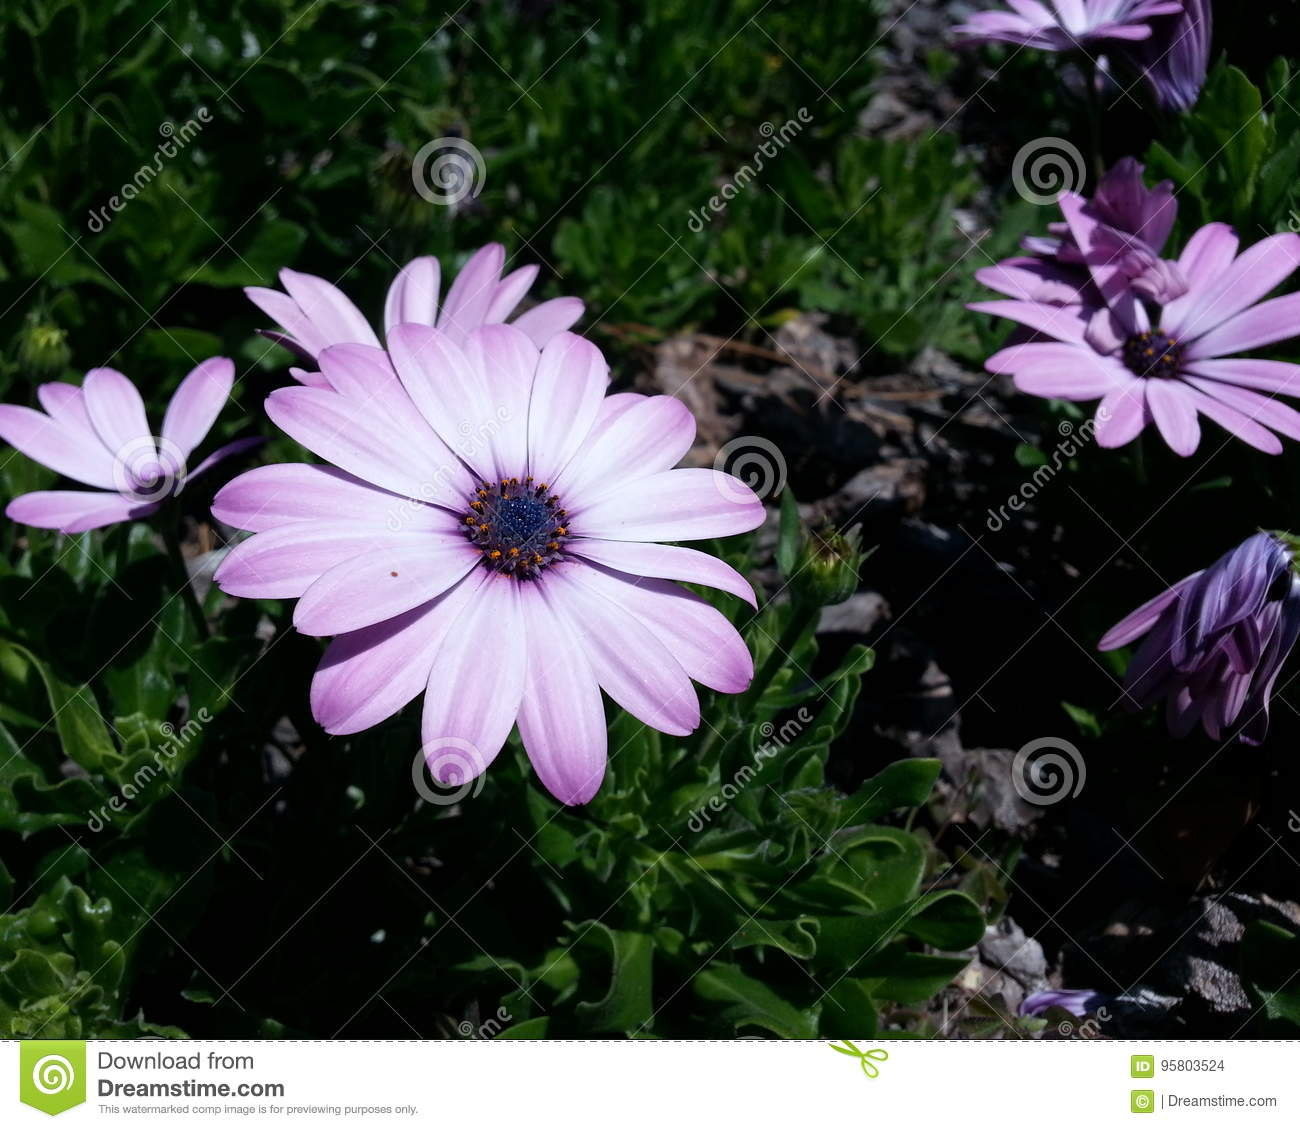 Light purple and white petaled flower stock photo image of light purple and white petaled flower with blue center izmirmasajfo